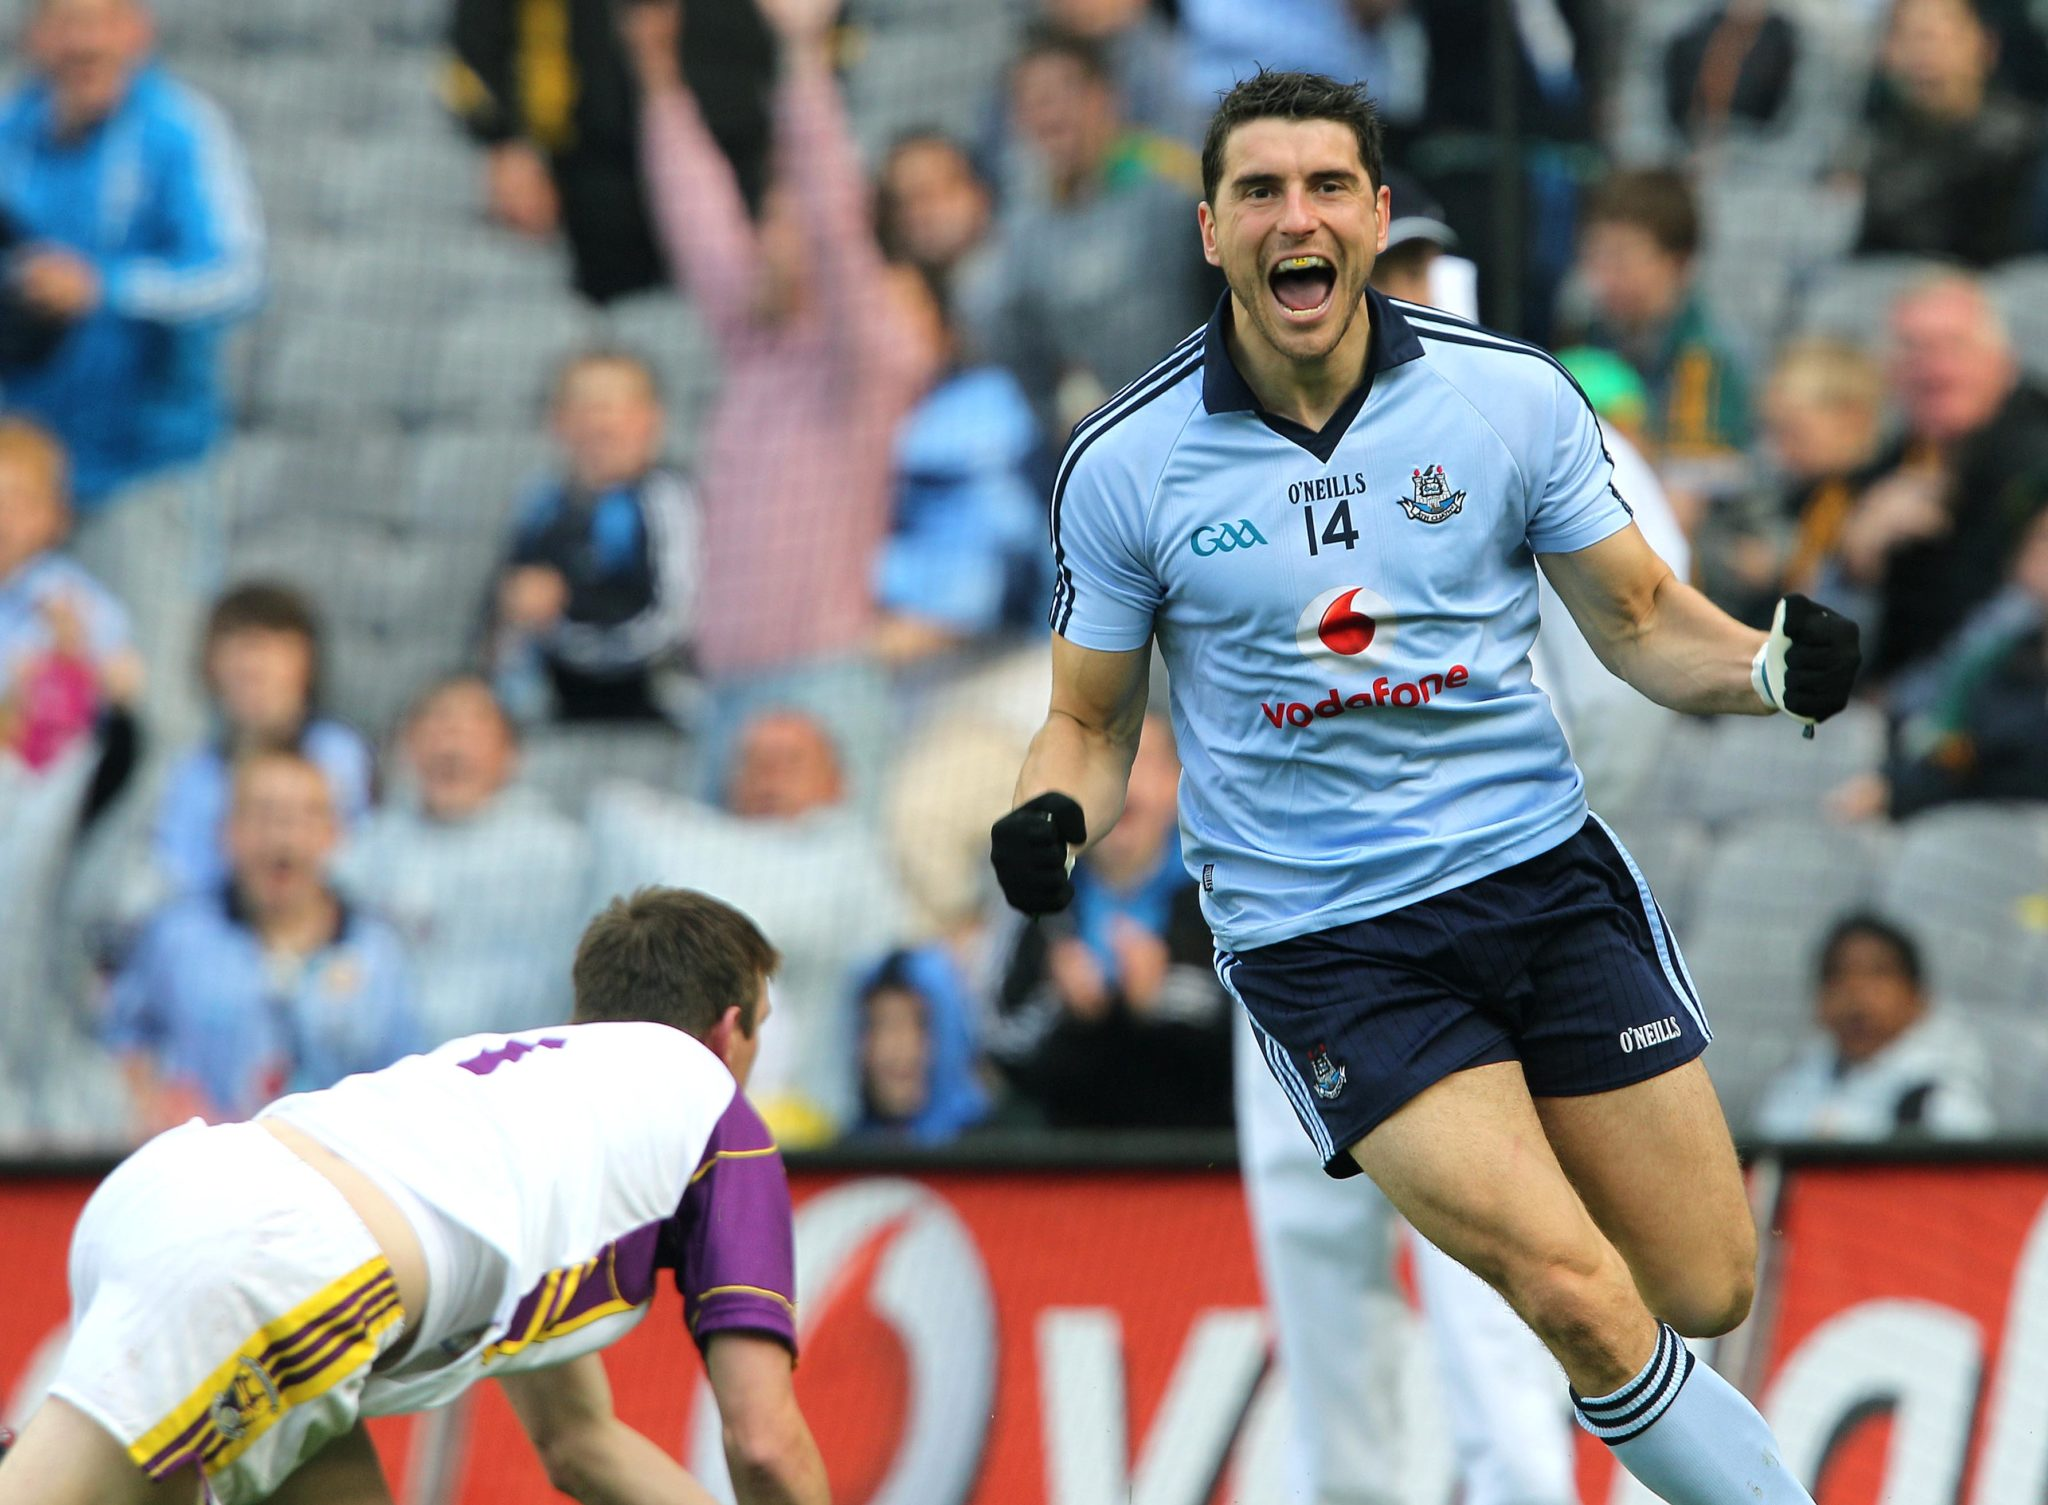 Bernard Brogan celebrates at Croke Park